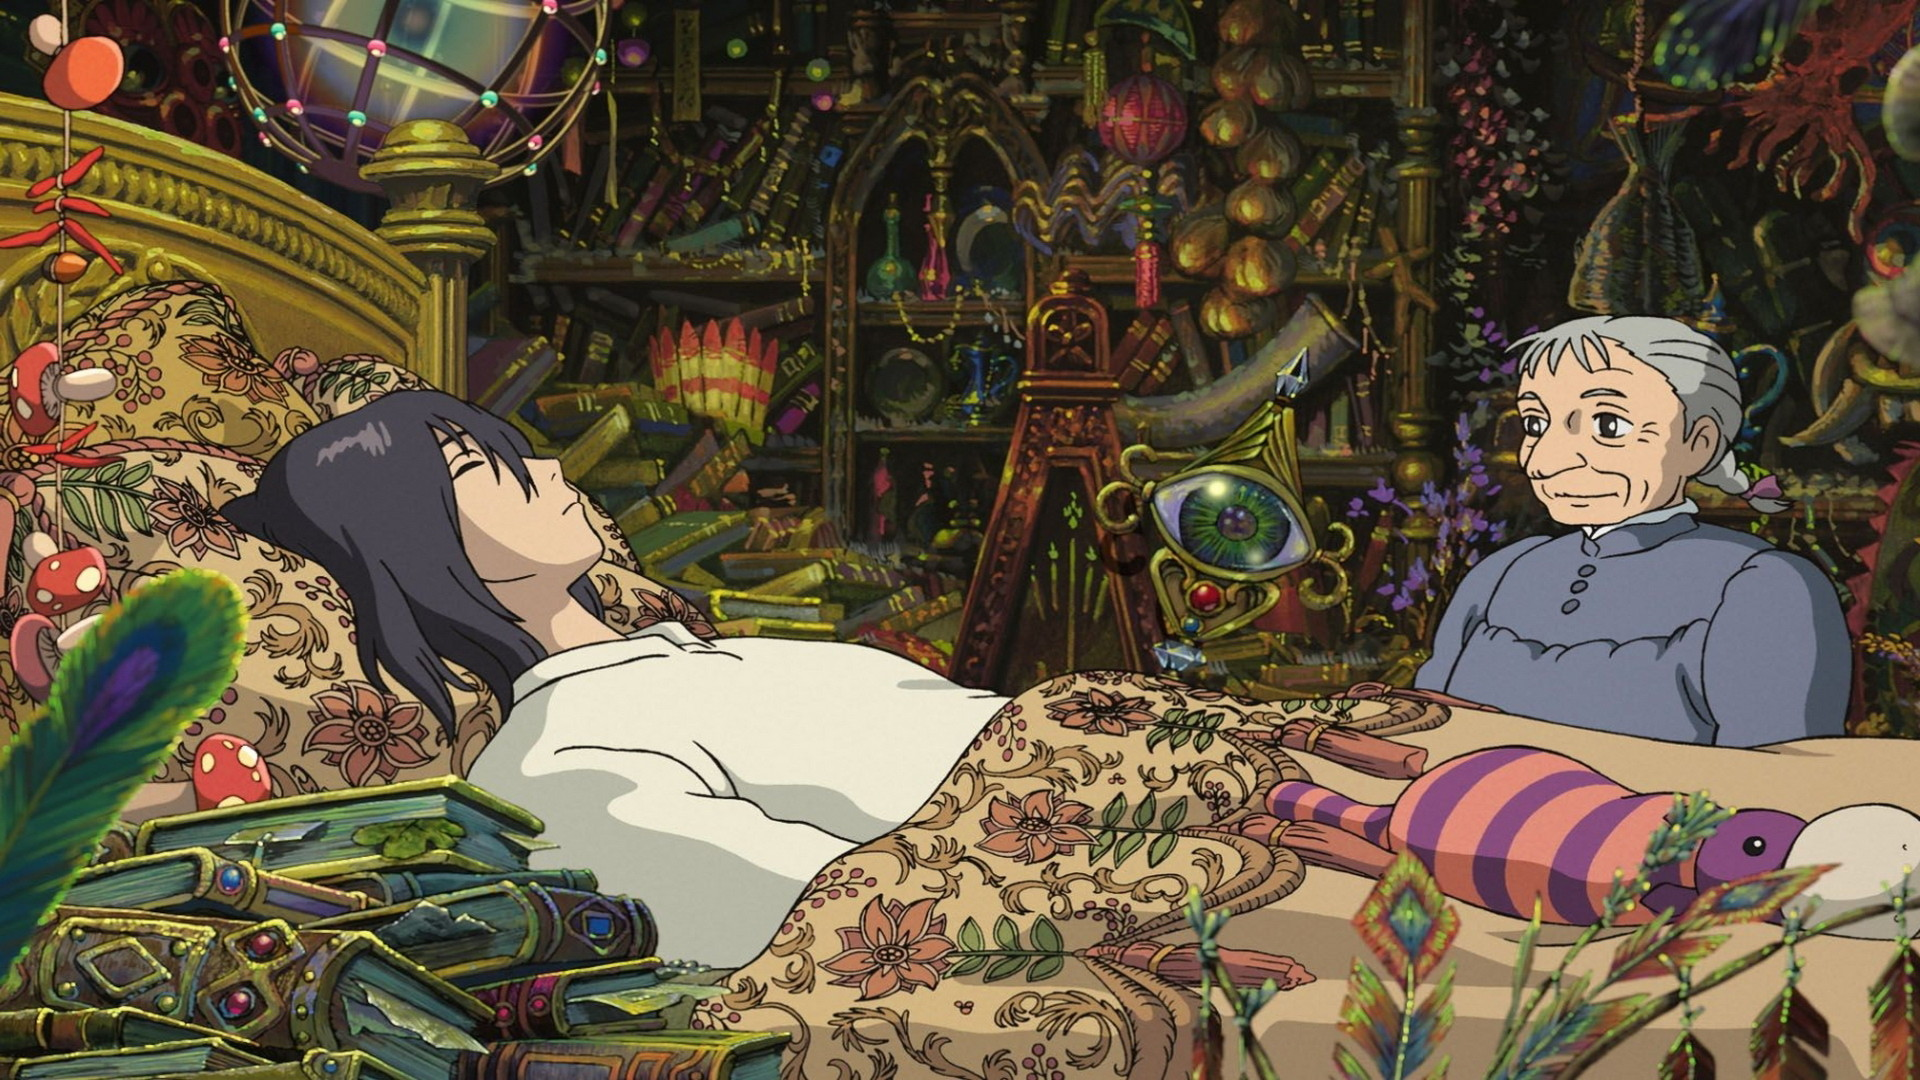 1920x1080 howl's+moving+castle | Howls Moving Castle Wallpaper Hd 3 | HD Desktop  Wallpapers